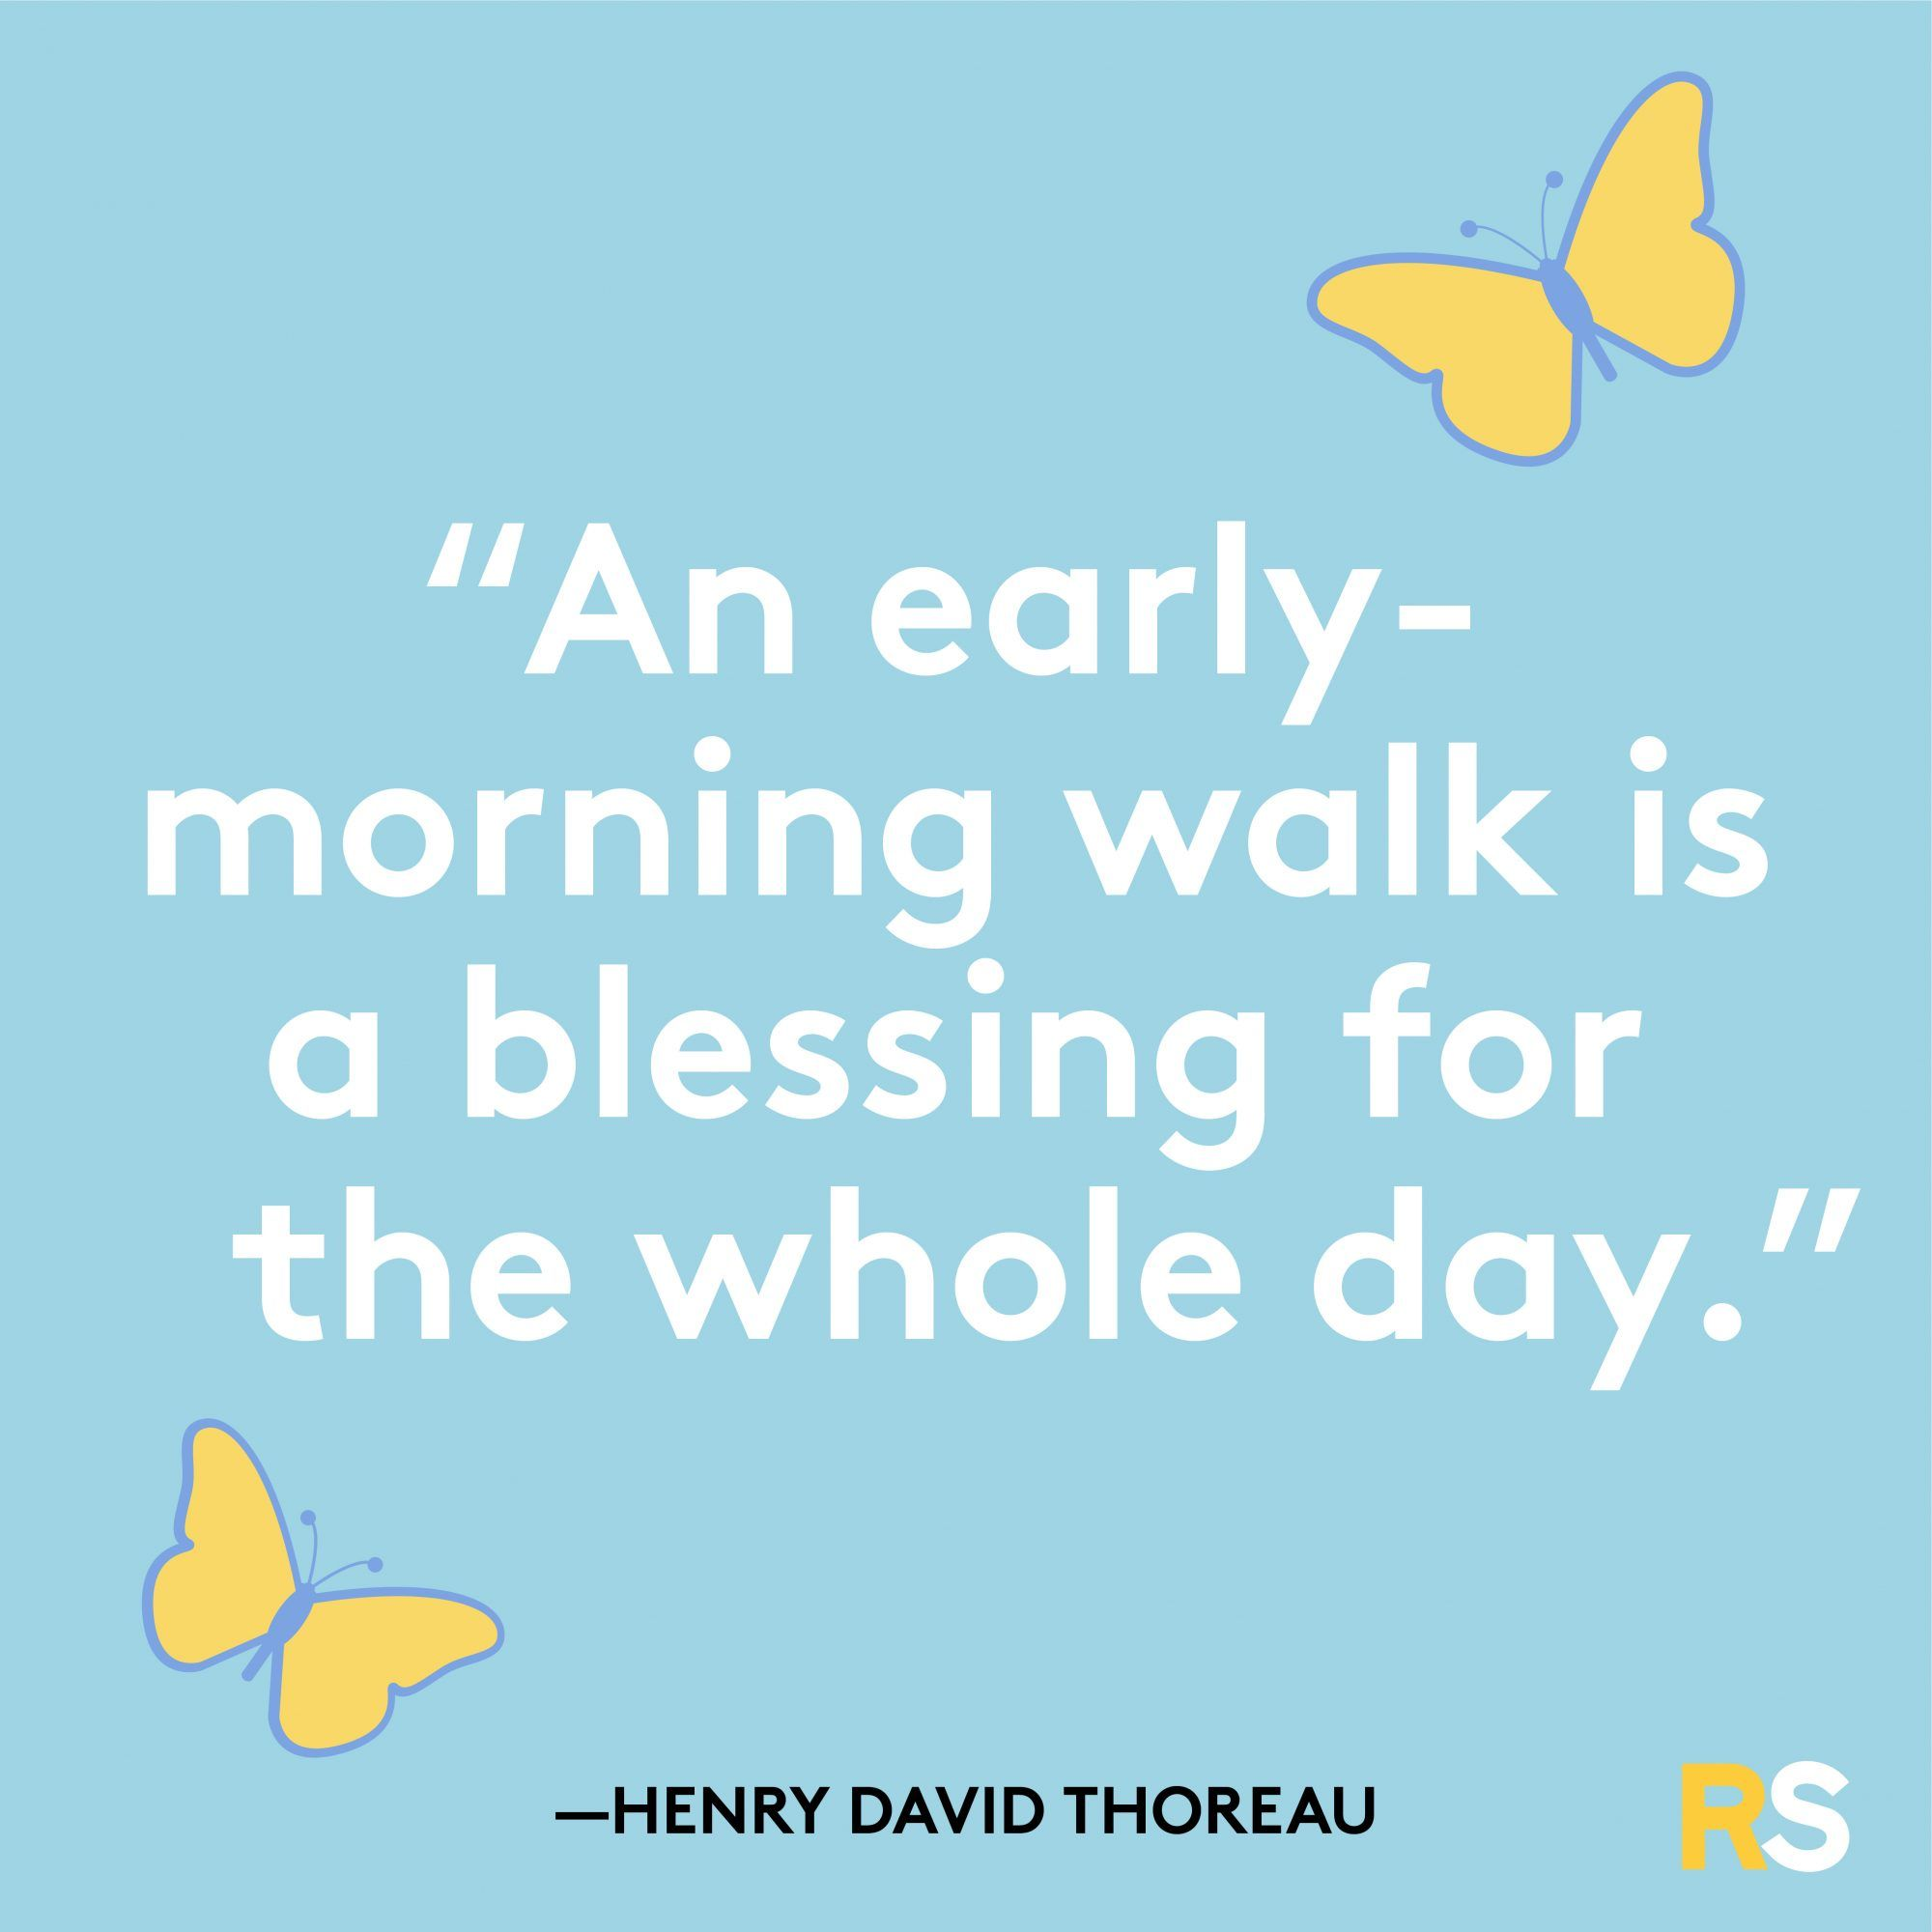 39 Good Morning Quotes To Start Your Day In 2020 Good Morning Quotes Morning Quotes Morning Walk Quotes